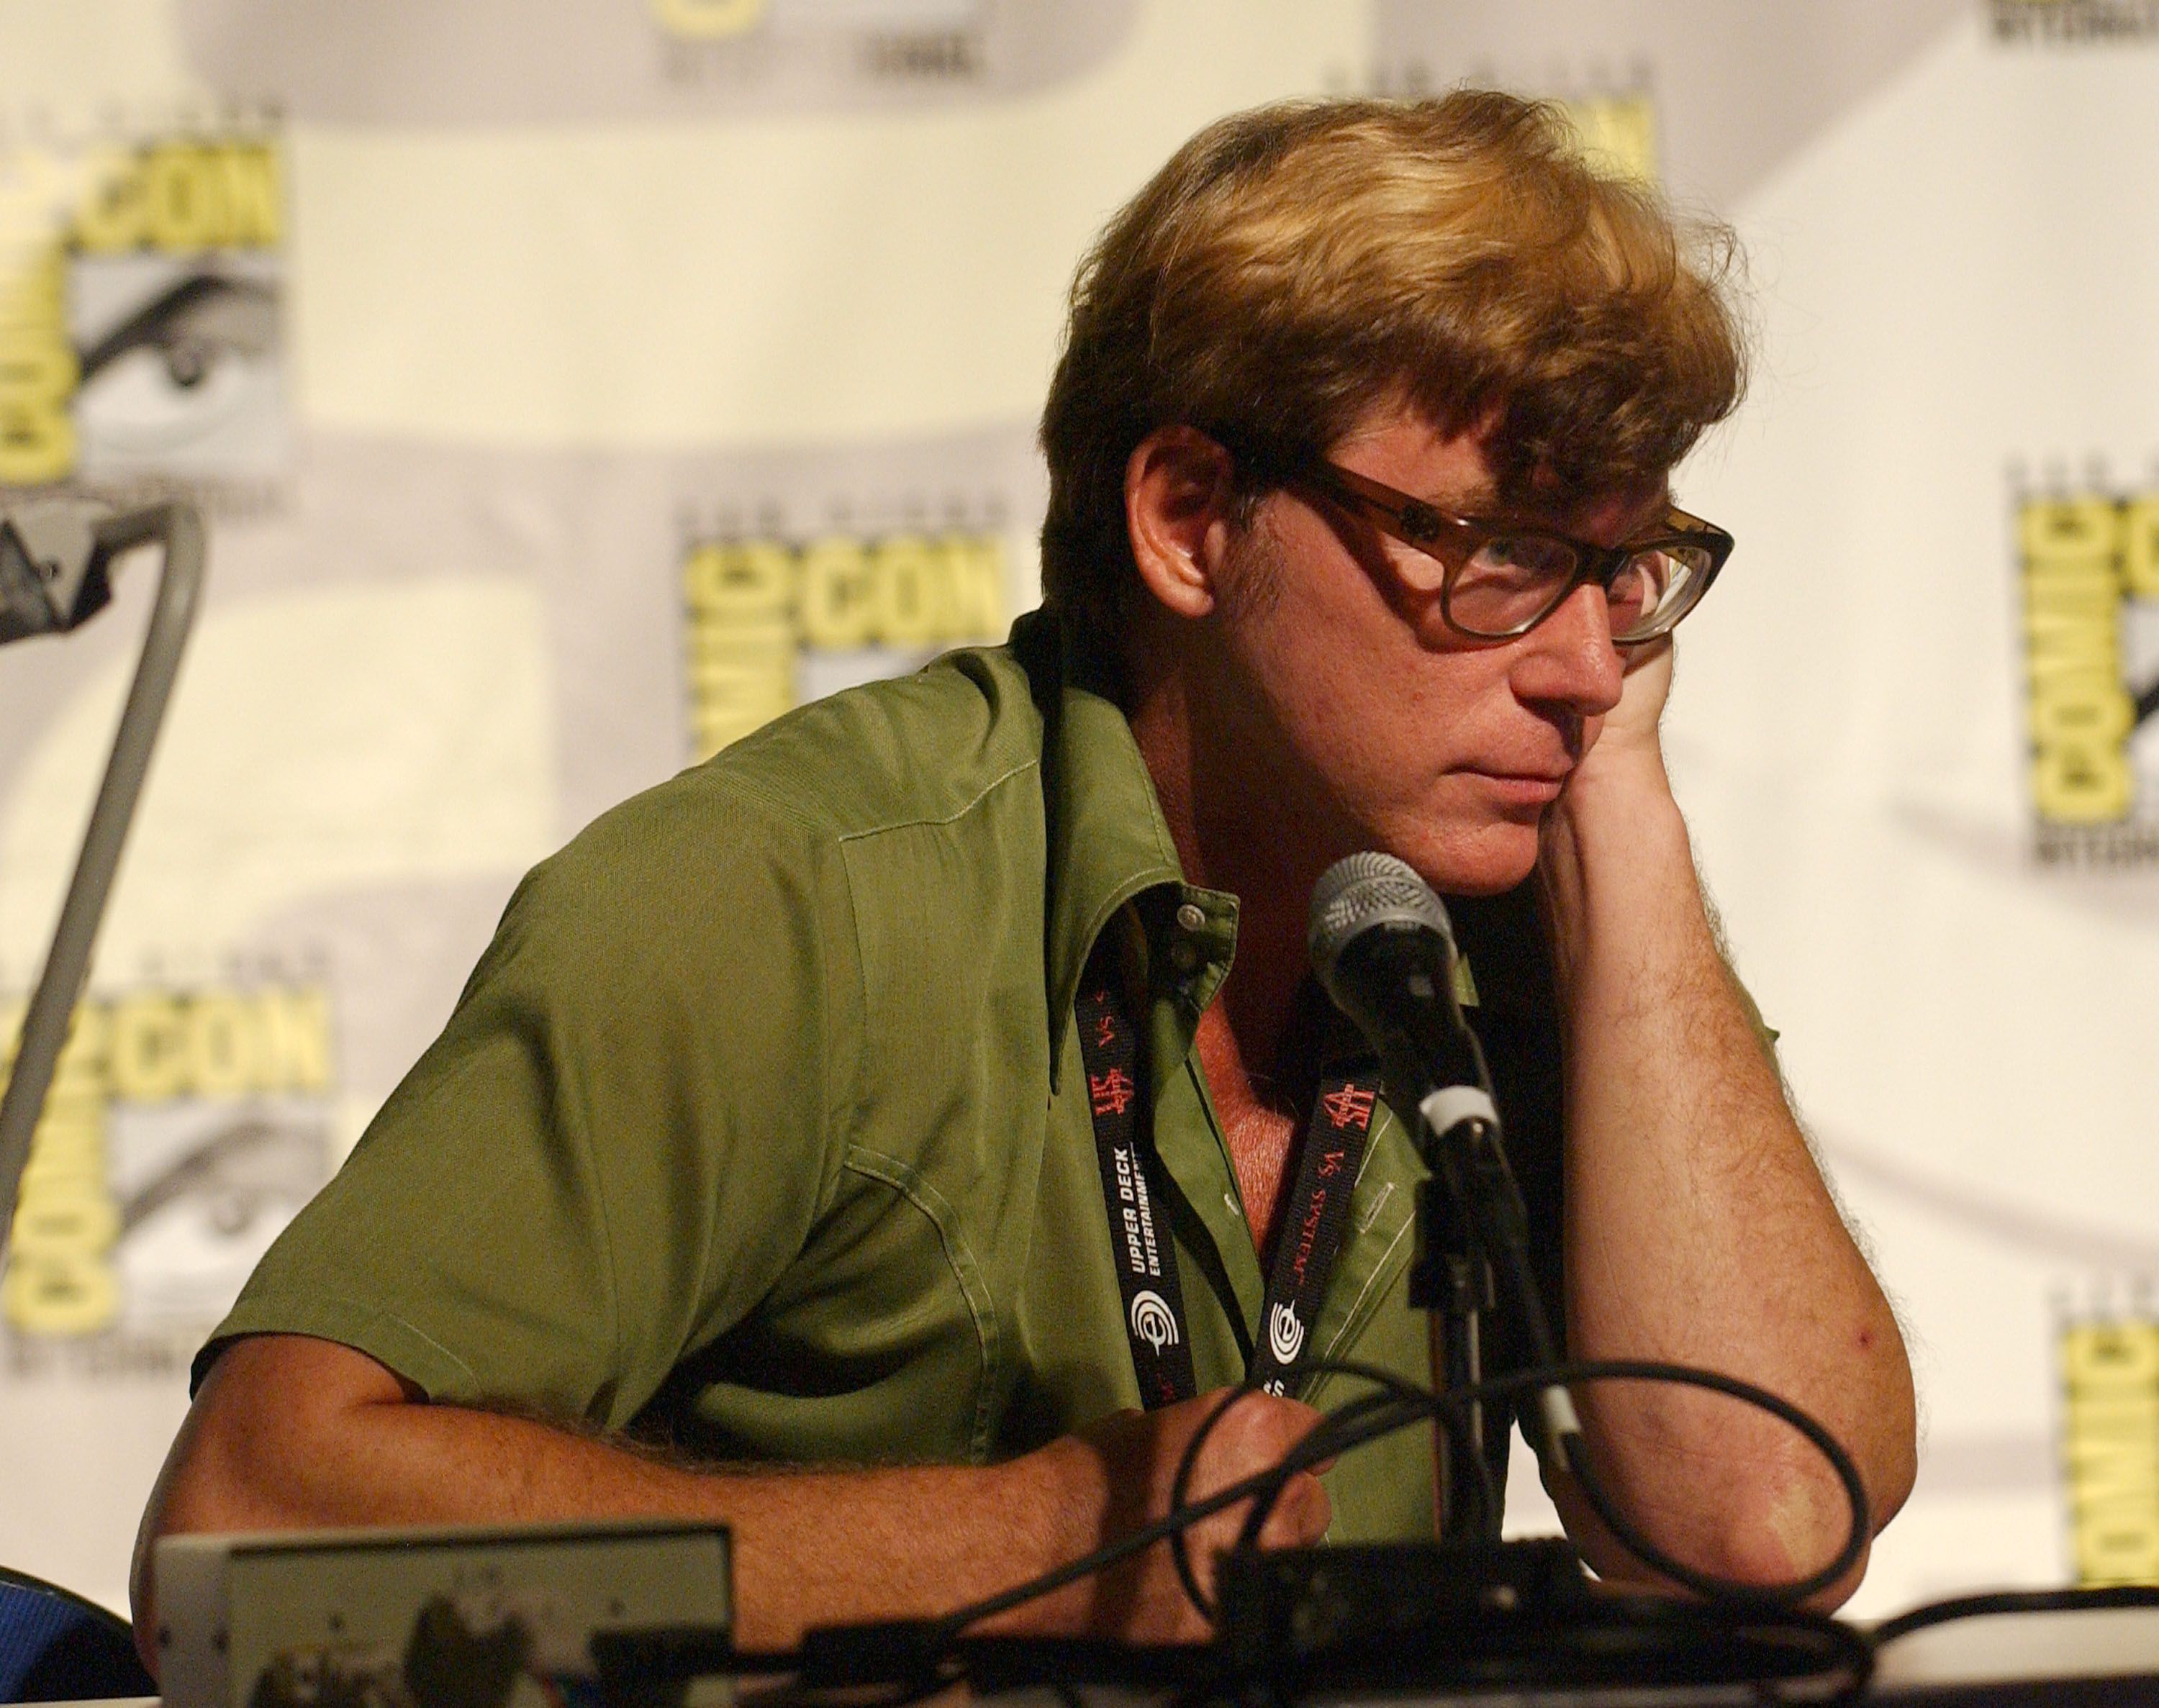 Cartoonist John Kricfalusi is photographed at the San Diego Convention Center in San Diego, CA.